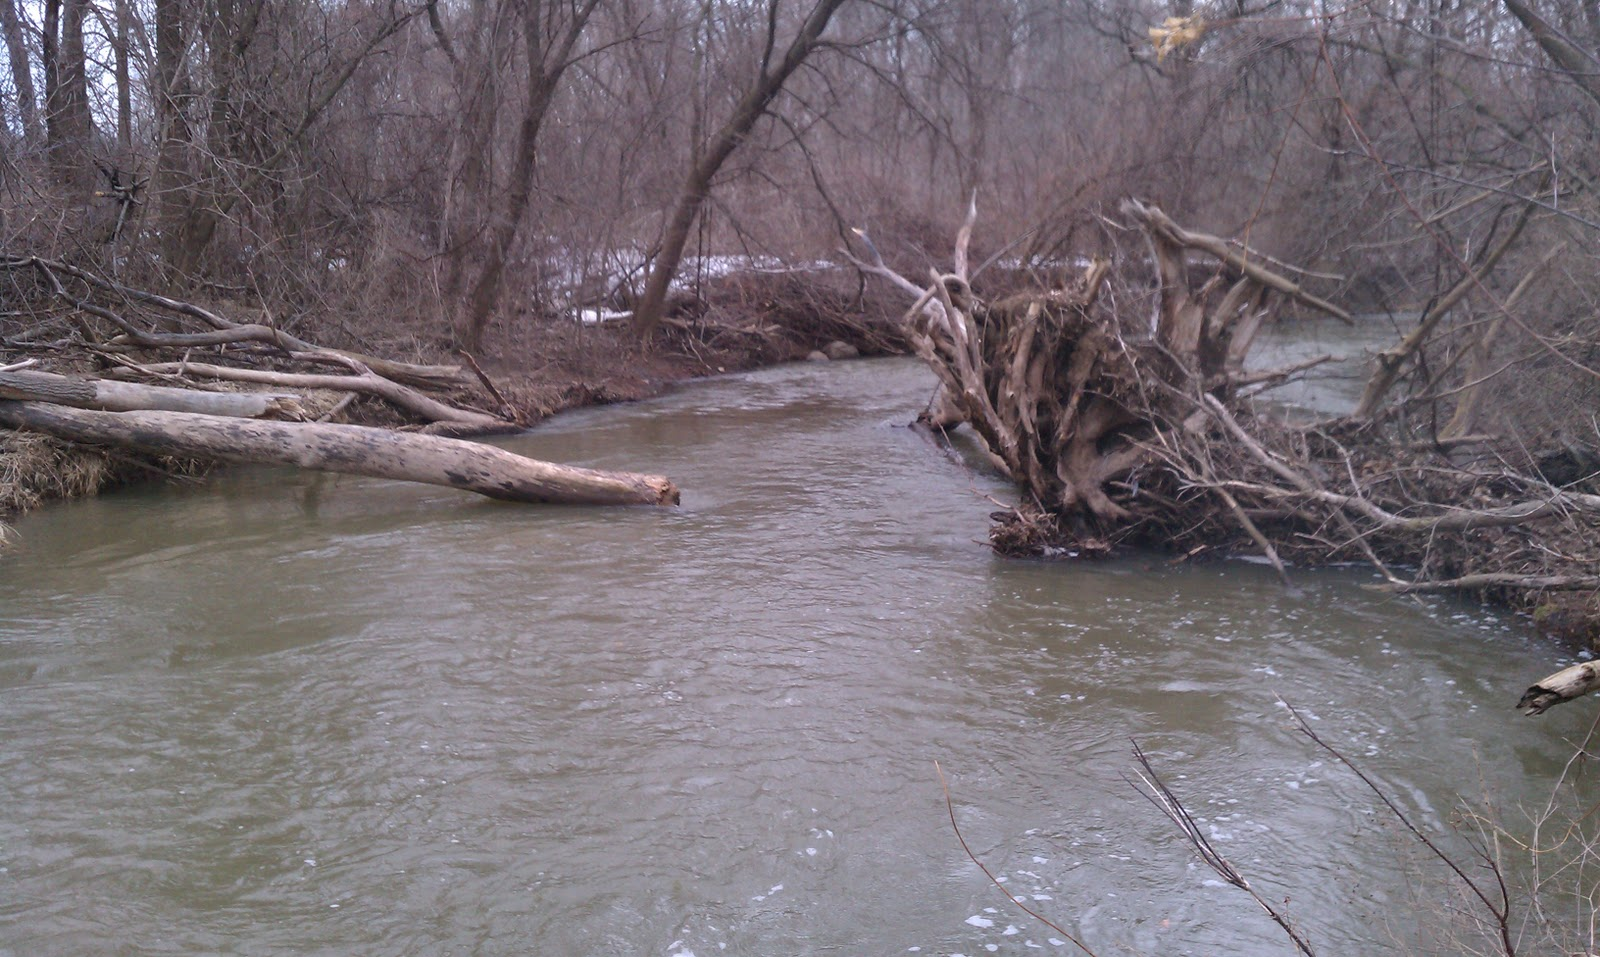 Illinois wisconsin fishing oak and pike river report for Illinois river fishing report